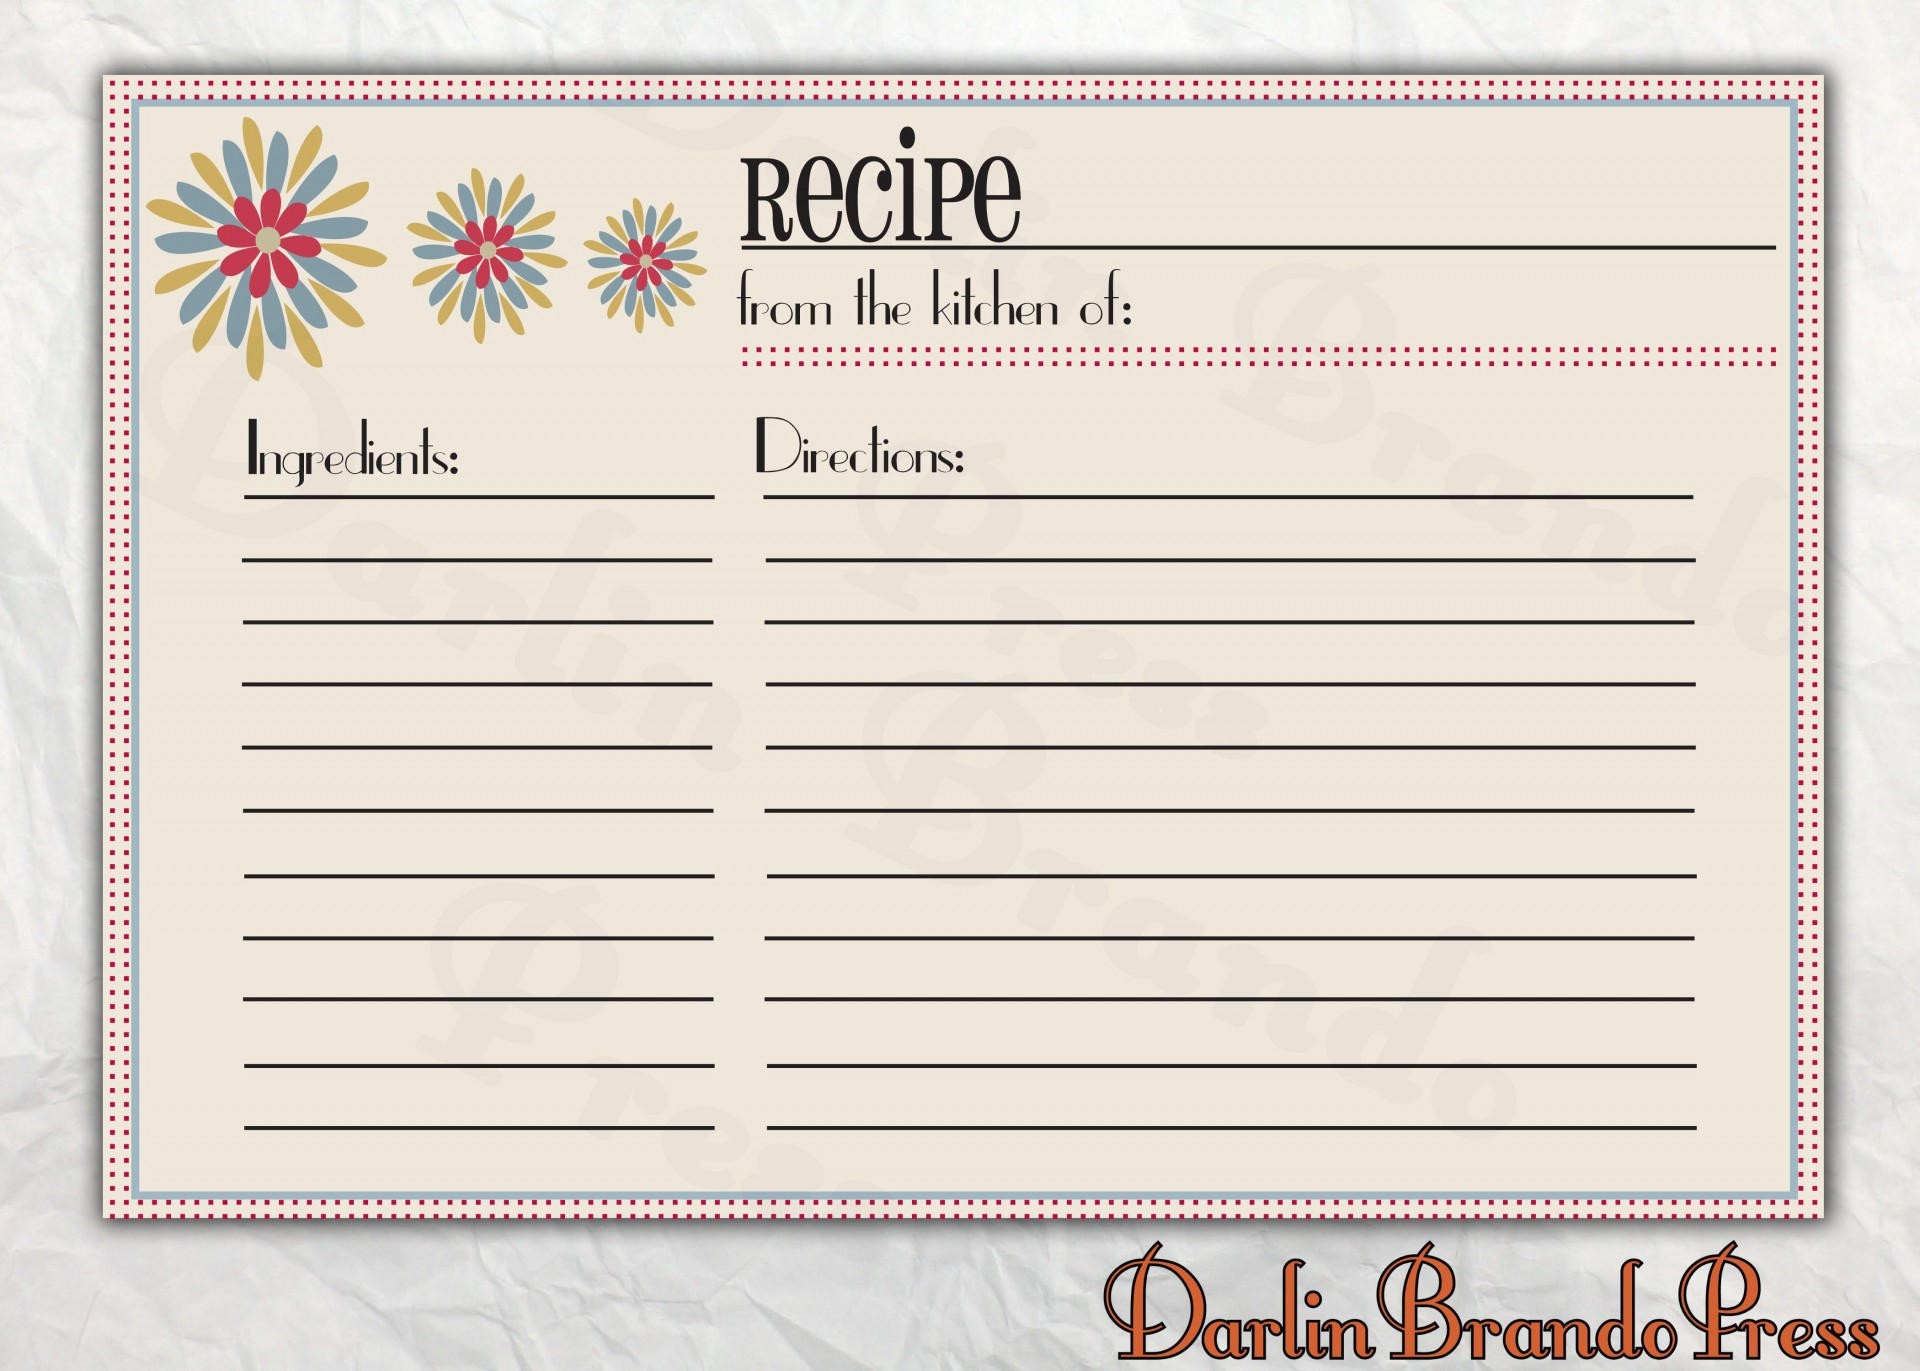 003 Excellent M Word Recipe Template Photo  Microsoft Card 2010 Full Page1920